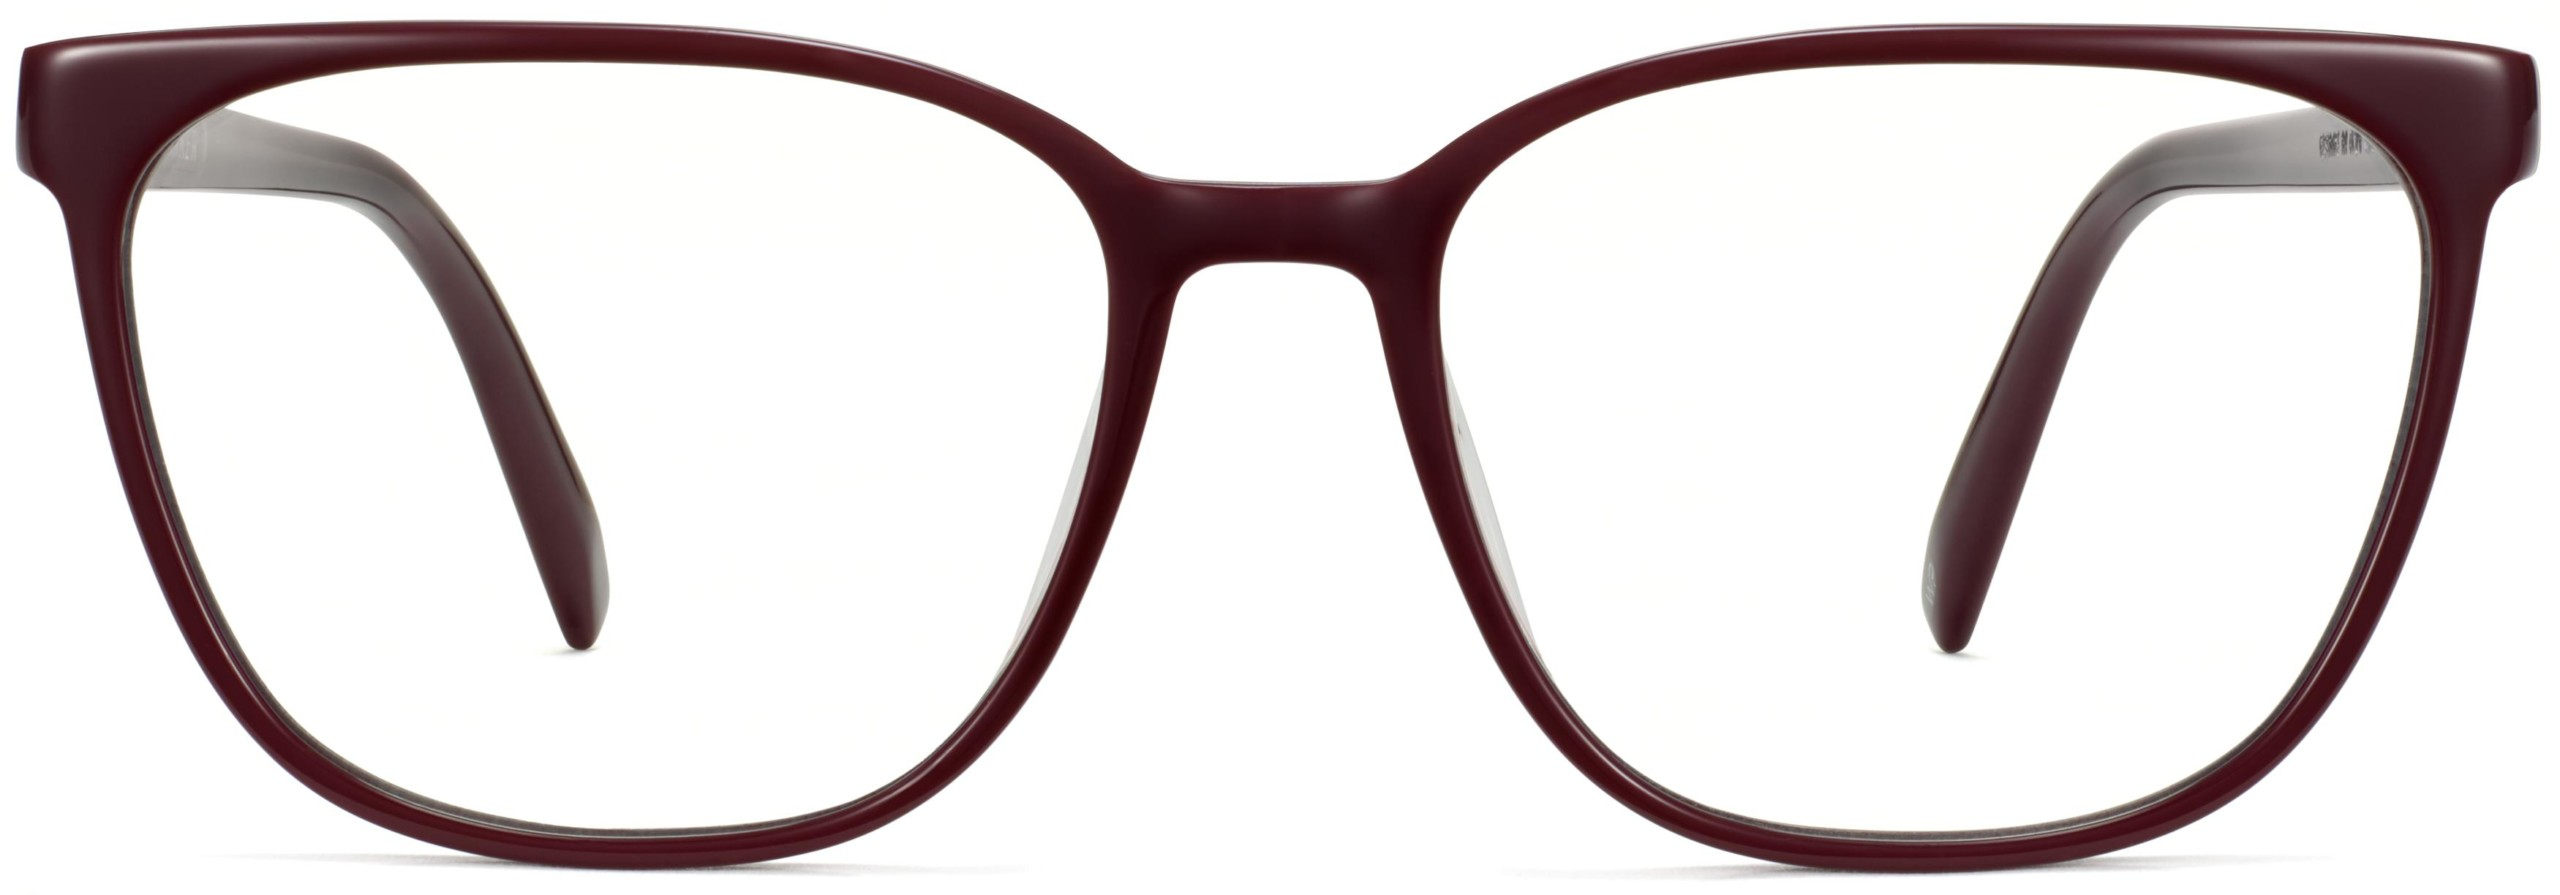 Front View Image of Esme Eyeglasses Collection, by Warby Parker Brand, in Oxblood Color